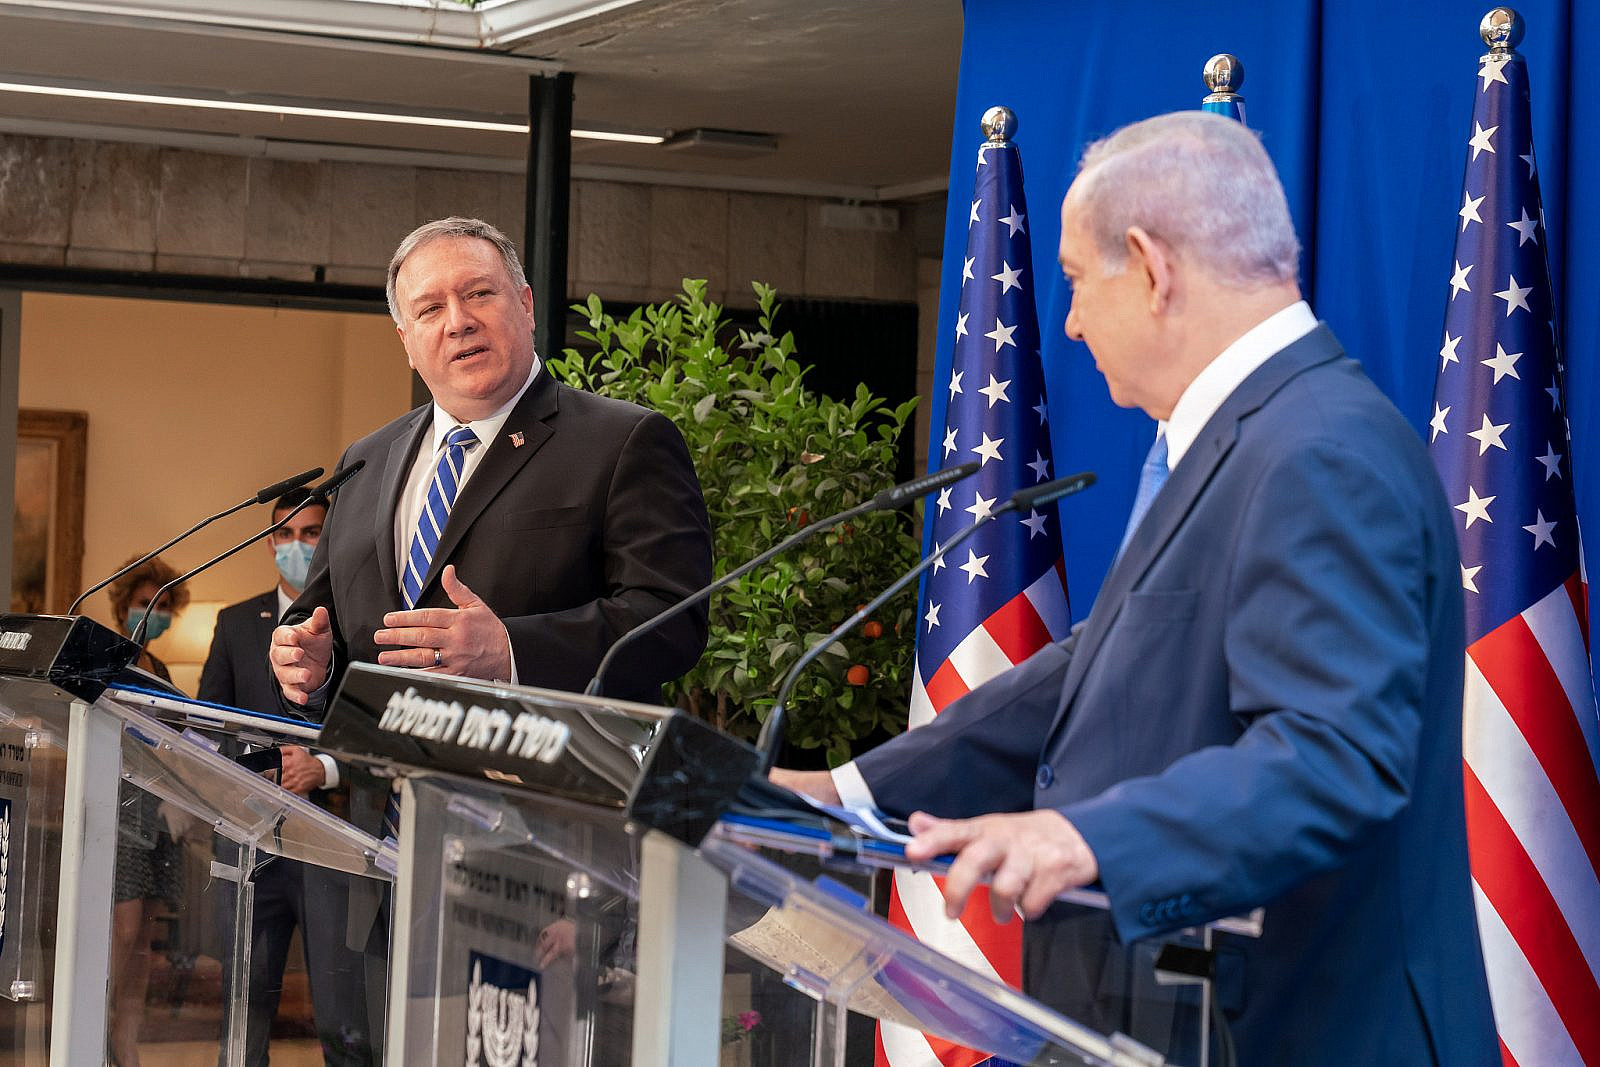 U.S. Secretary of State Michael Pompeo with Israeli Prime Minister Benjamin Netanyahu at the Prime Minister's Residence in Jerusalem. May 13, 2020. (Ron Przysucha/U.S. State Department)